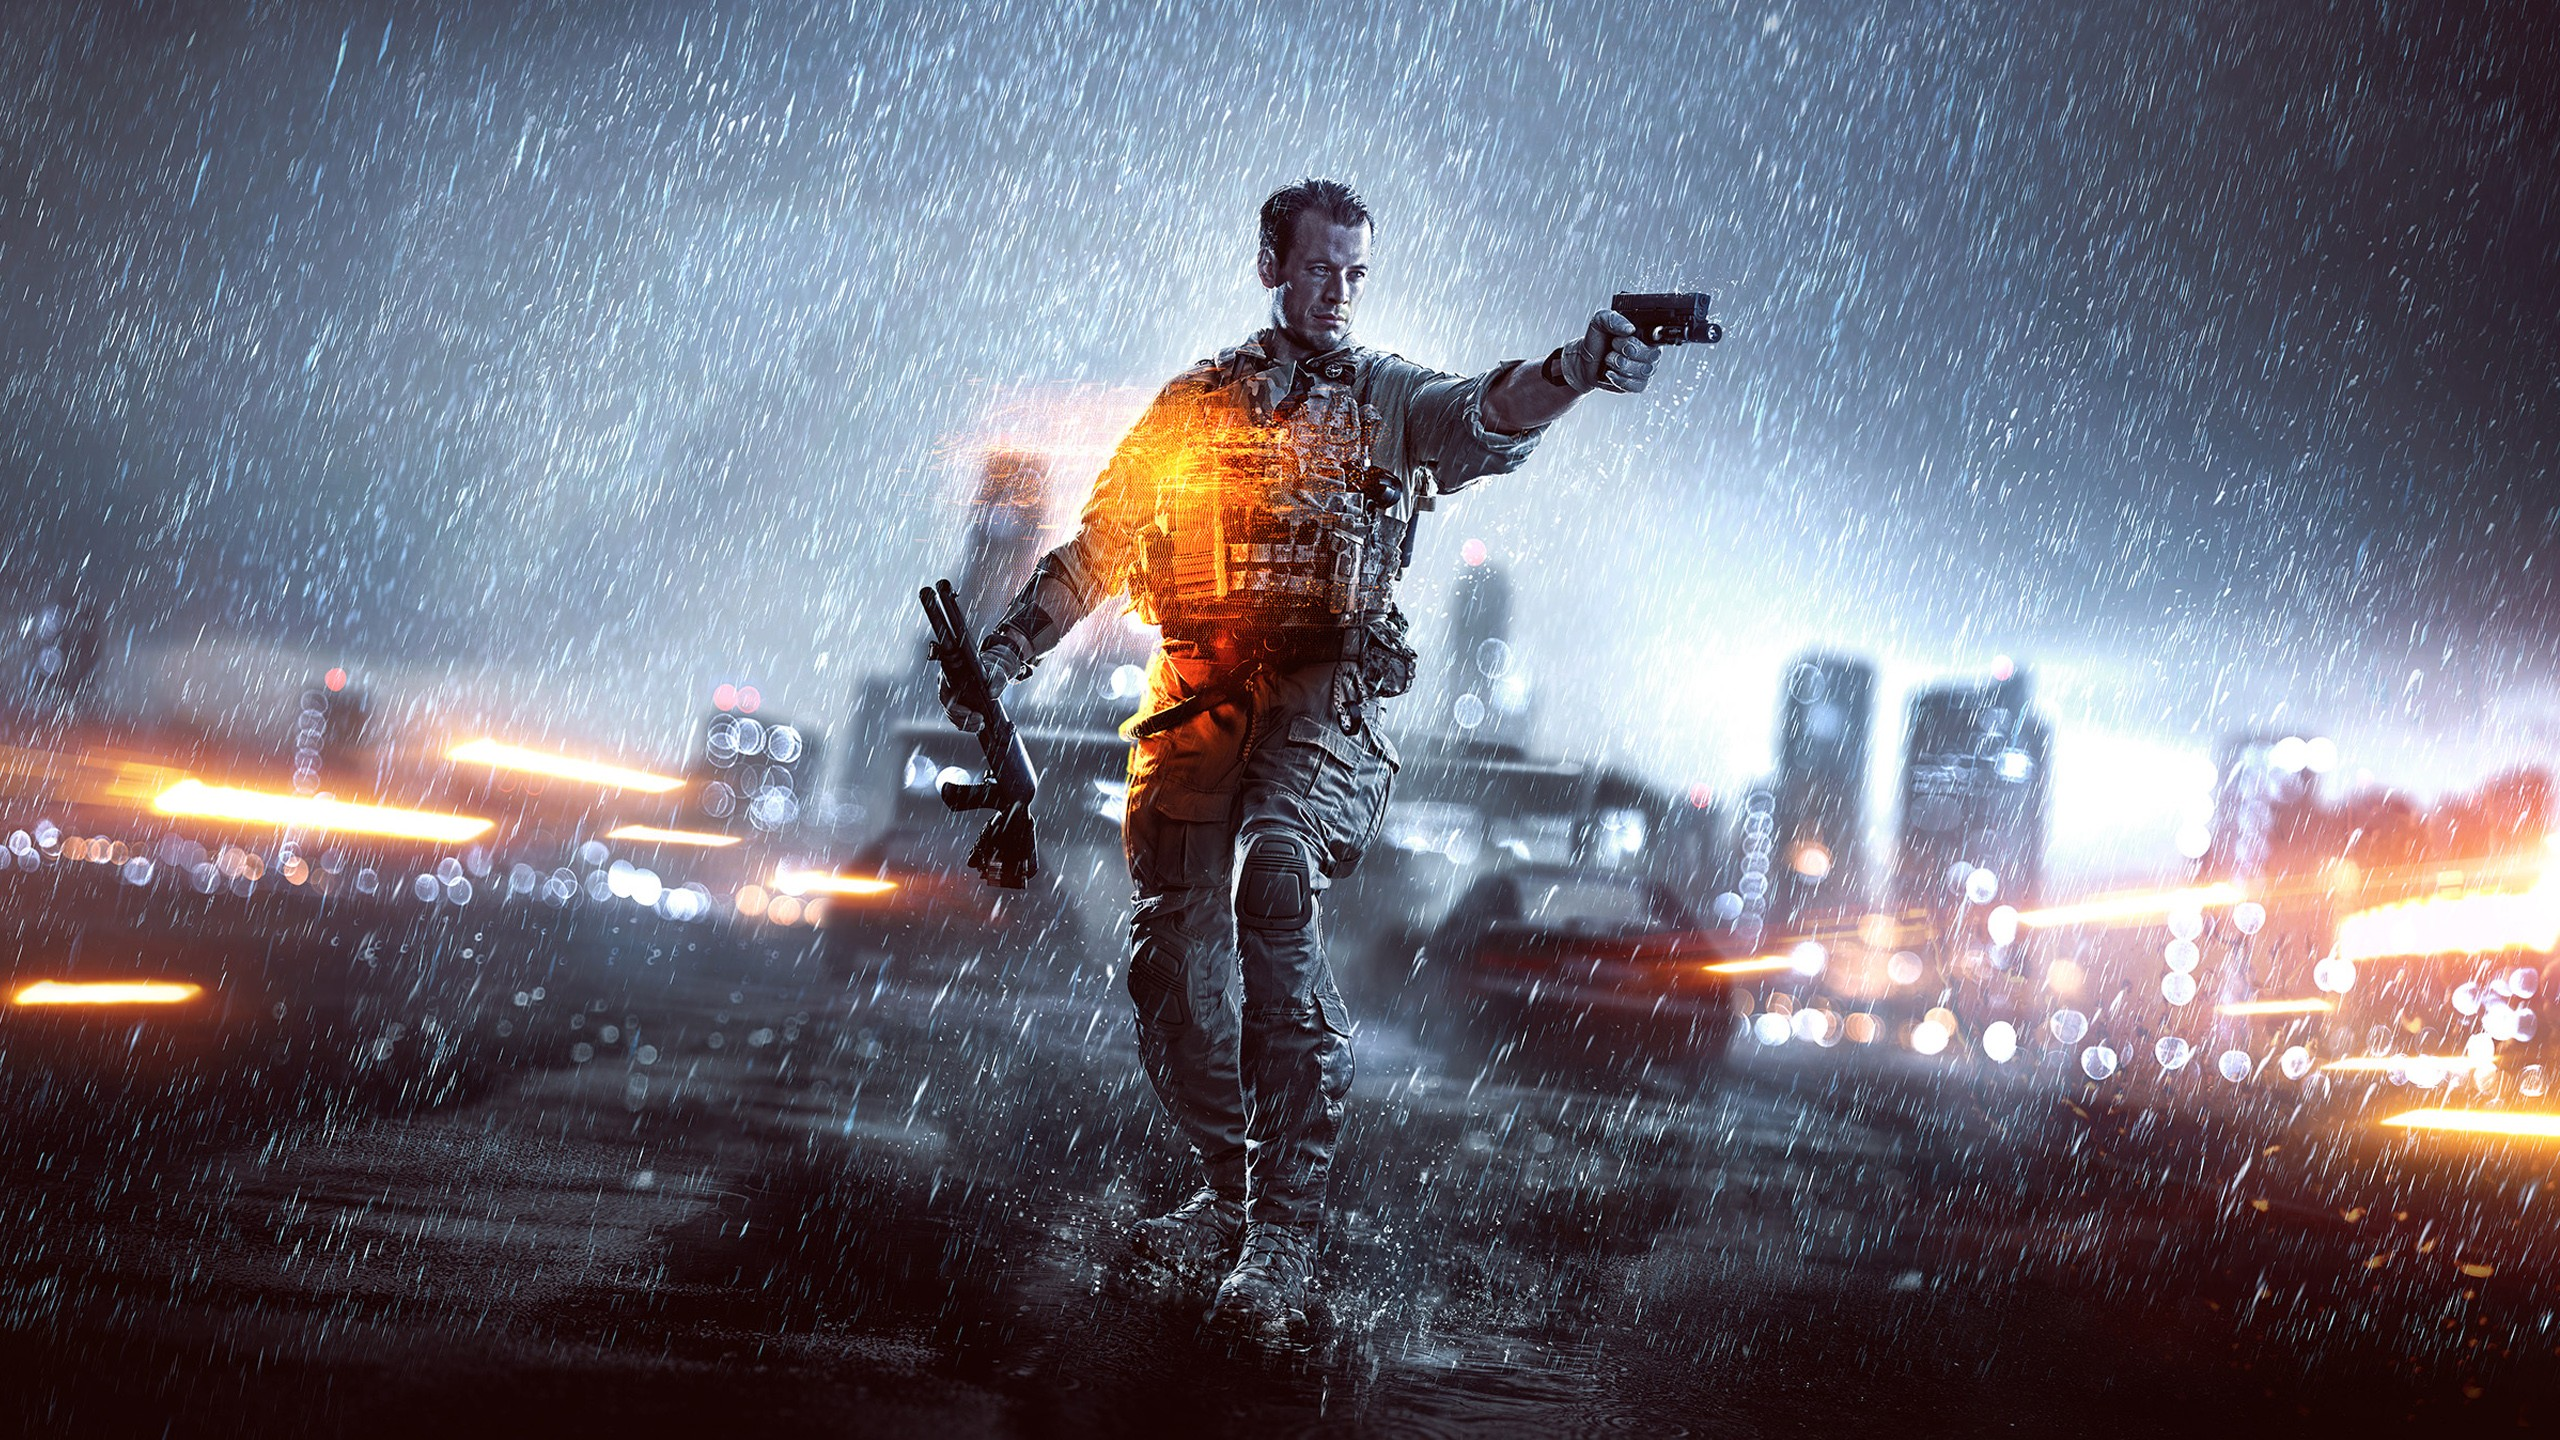 1536x2048 battlefield 4 wallpaper - photo #6